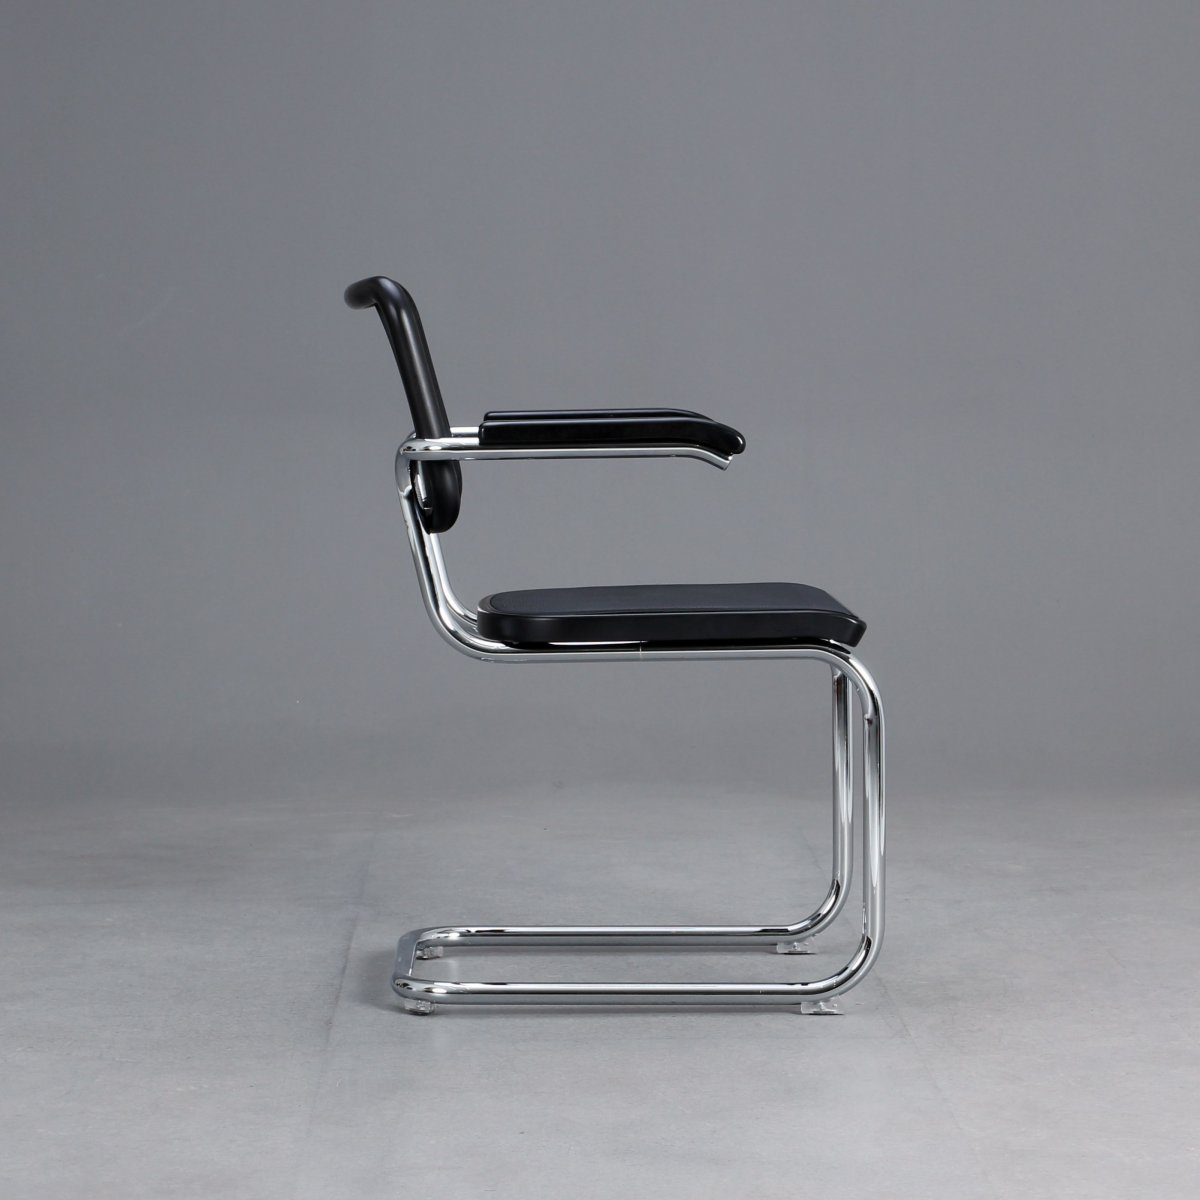 Bauhausstil Möbel Merkmale Thonet S64 N Cantilever Bauhaus Classic Chair Black Breuer